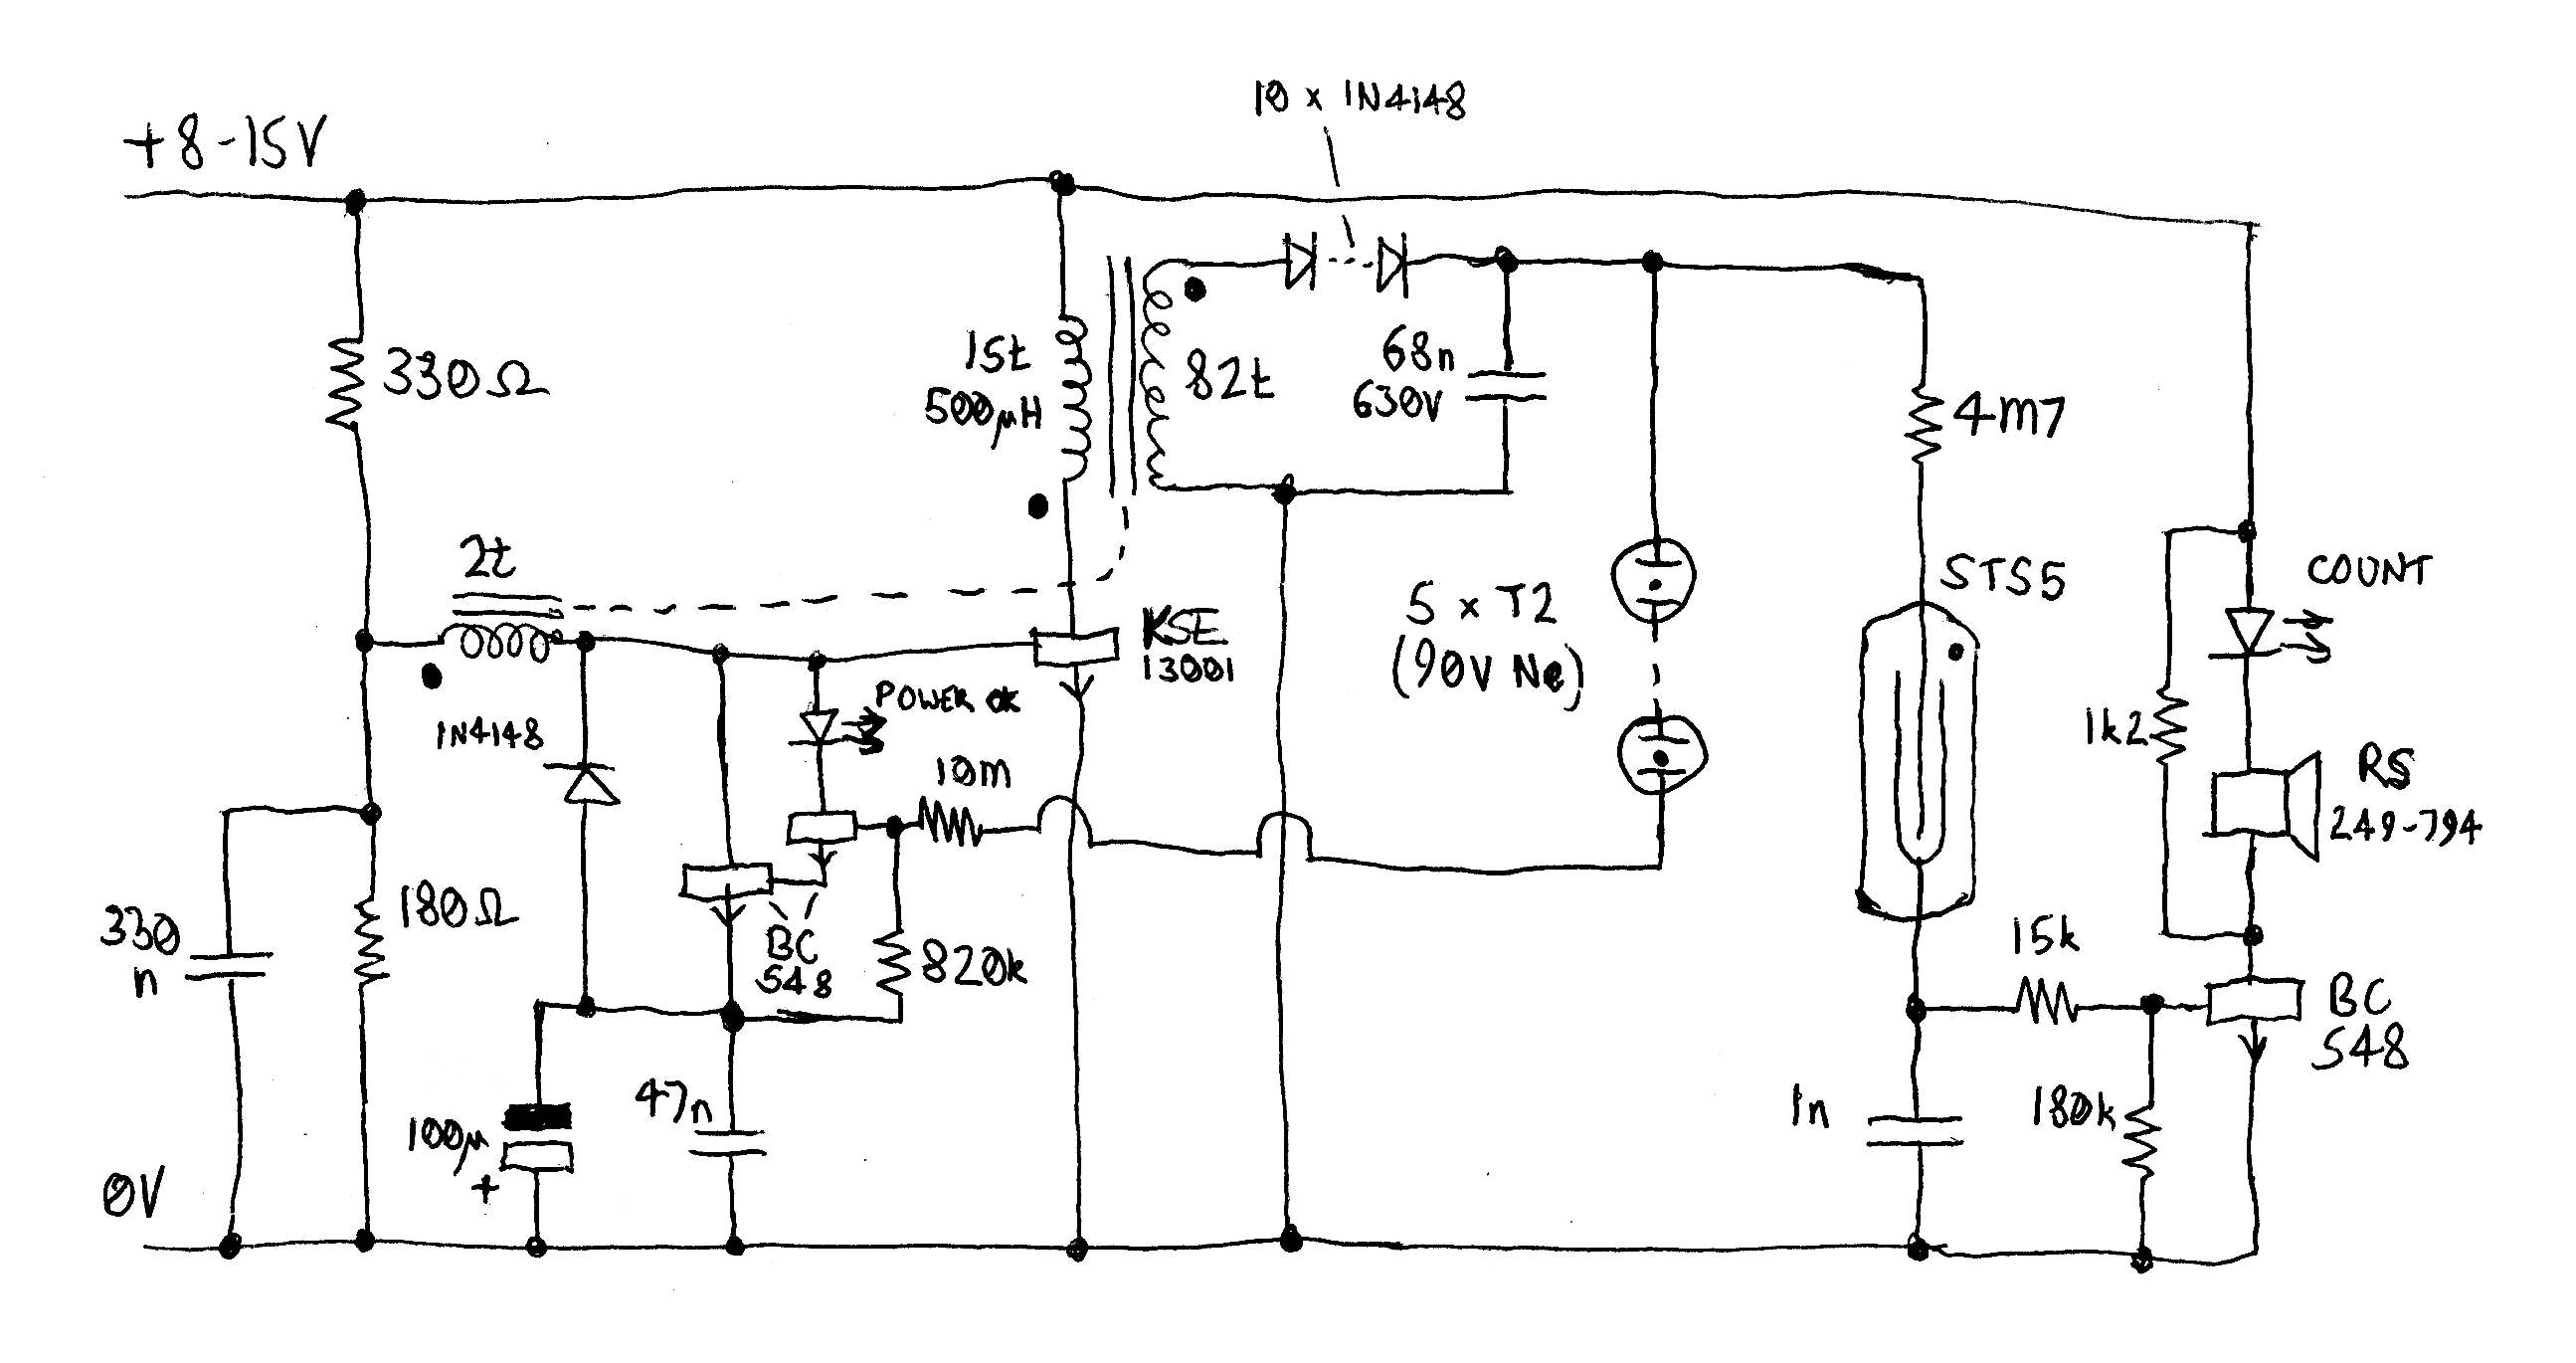 Geiger Counter CCD Camera Wiring Diagram Geiger Counter Wiring Diagram